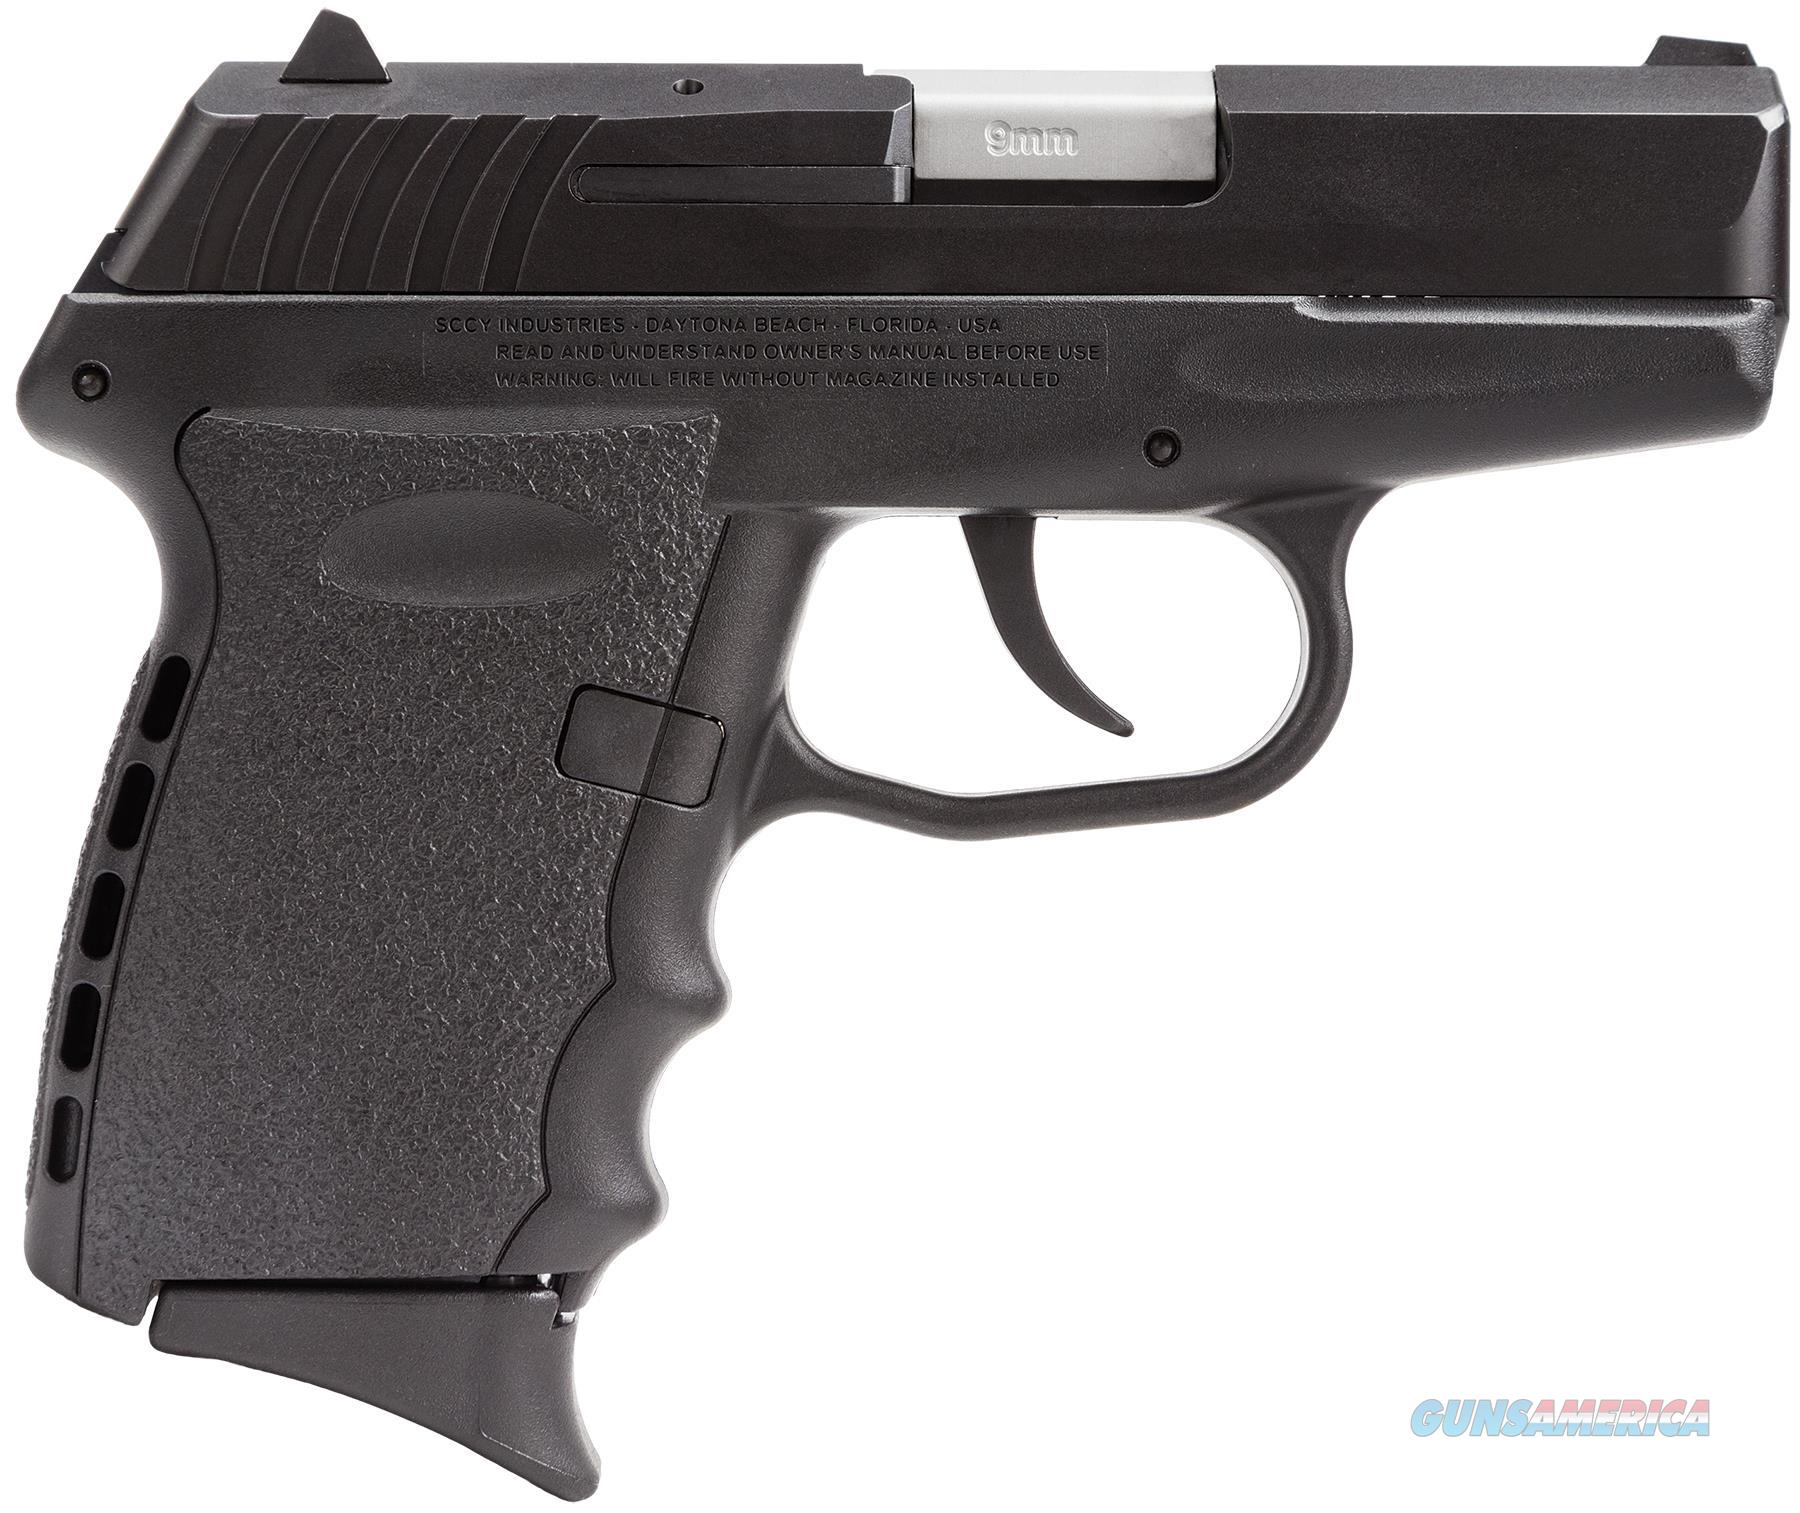 """Sccy Industries Cpx2cb Cpx-2 Double 9Mm 3.1"""" 10+1 Black Polymer Grip/Frame Grip Black Nitride Stainless Steel CPX2CB  Guns > Pistols > S Misc Pistols"""